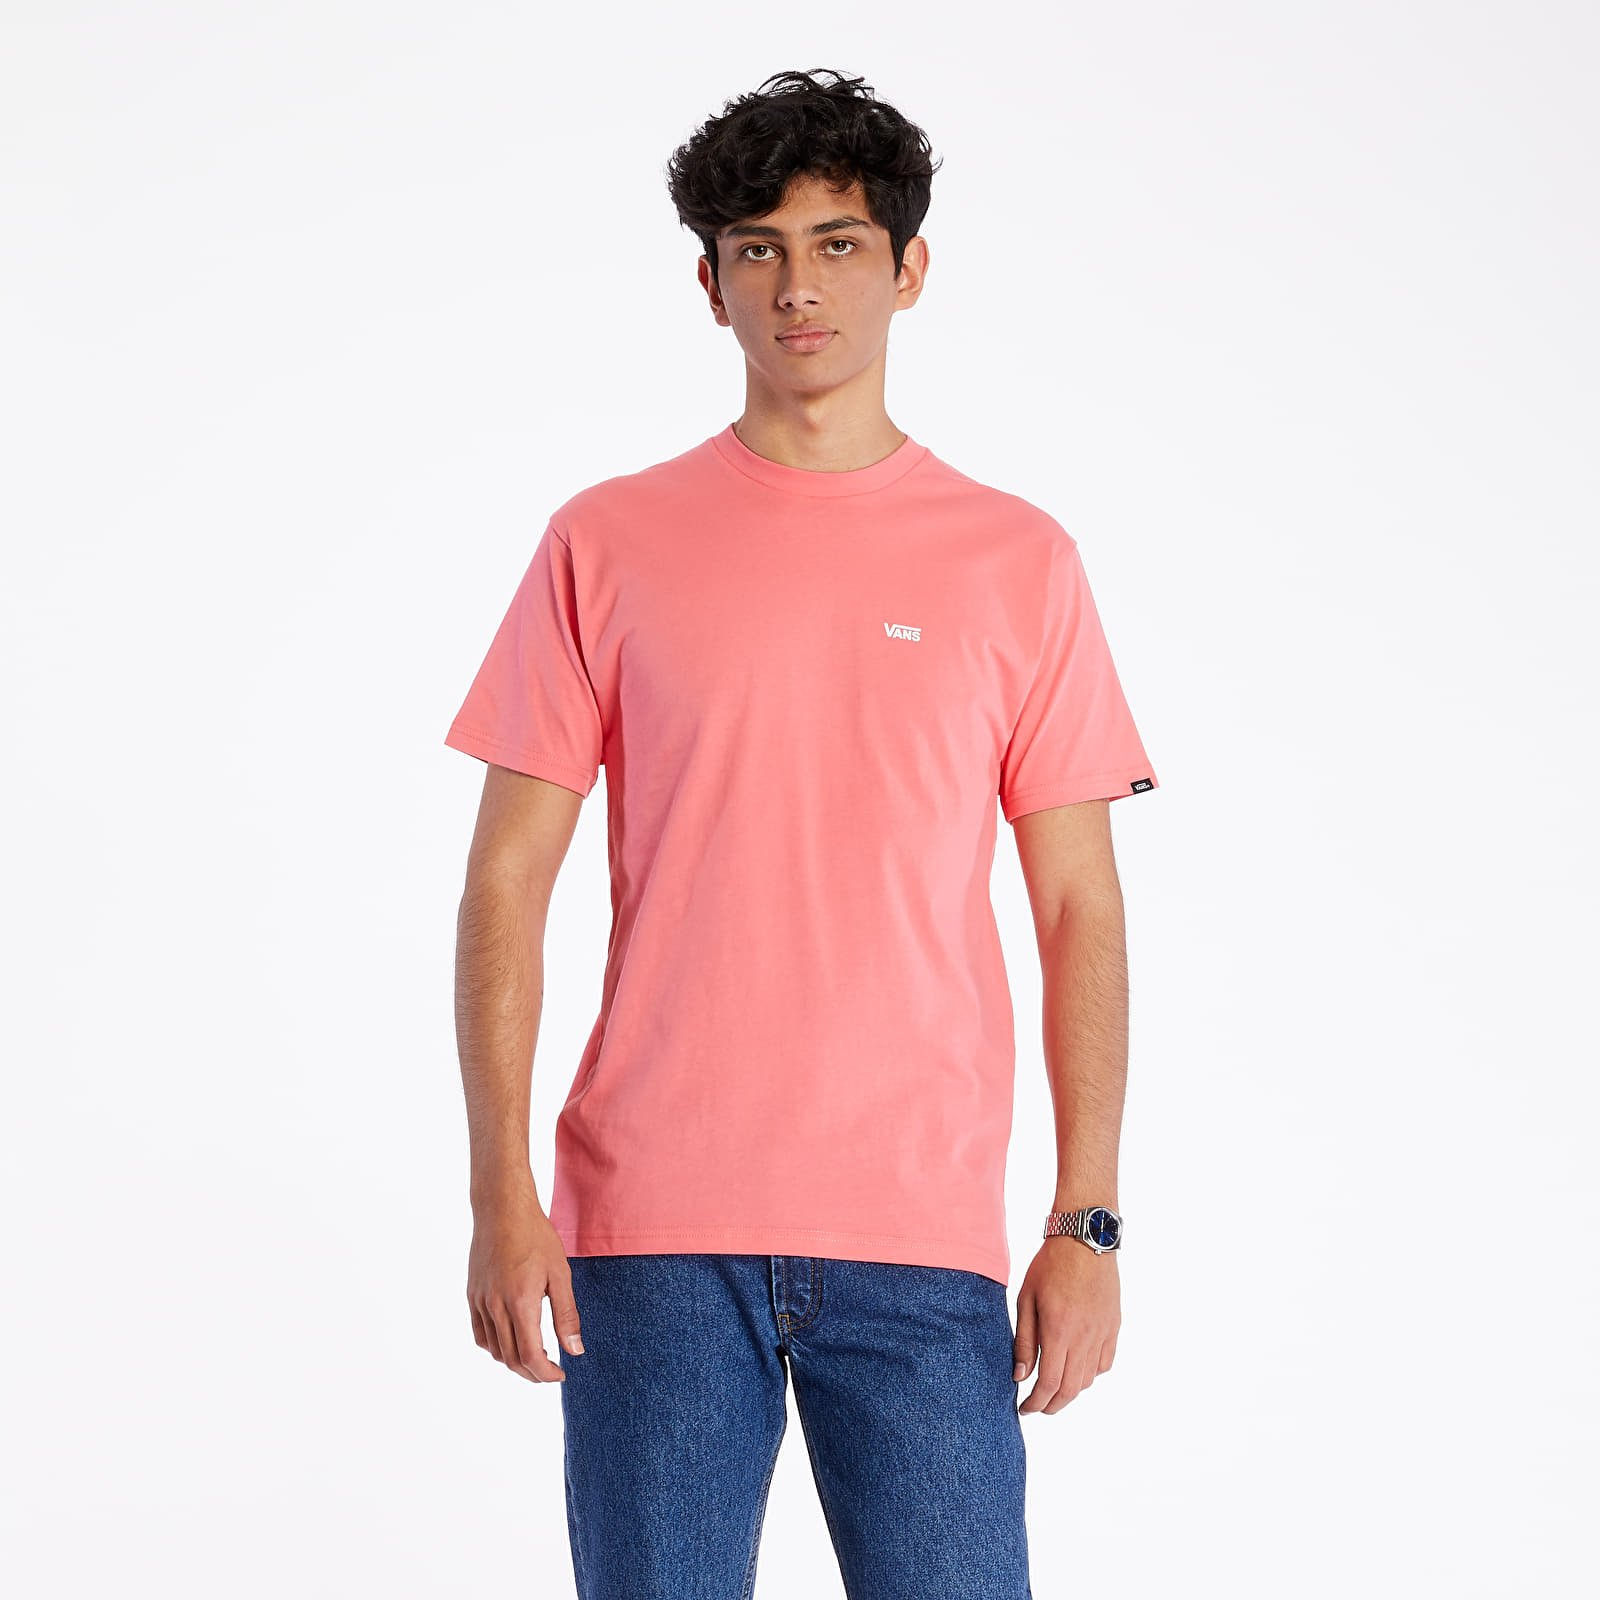 Vans Left Chest Logo Tee